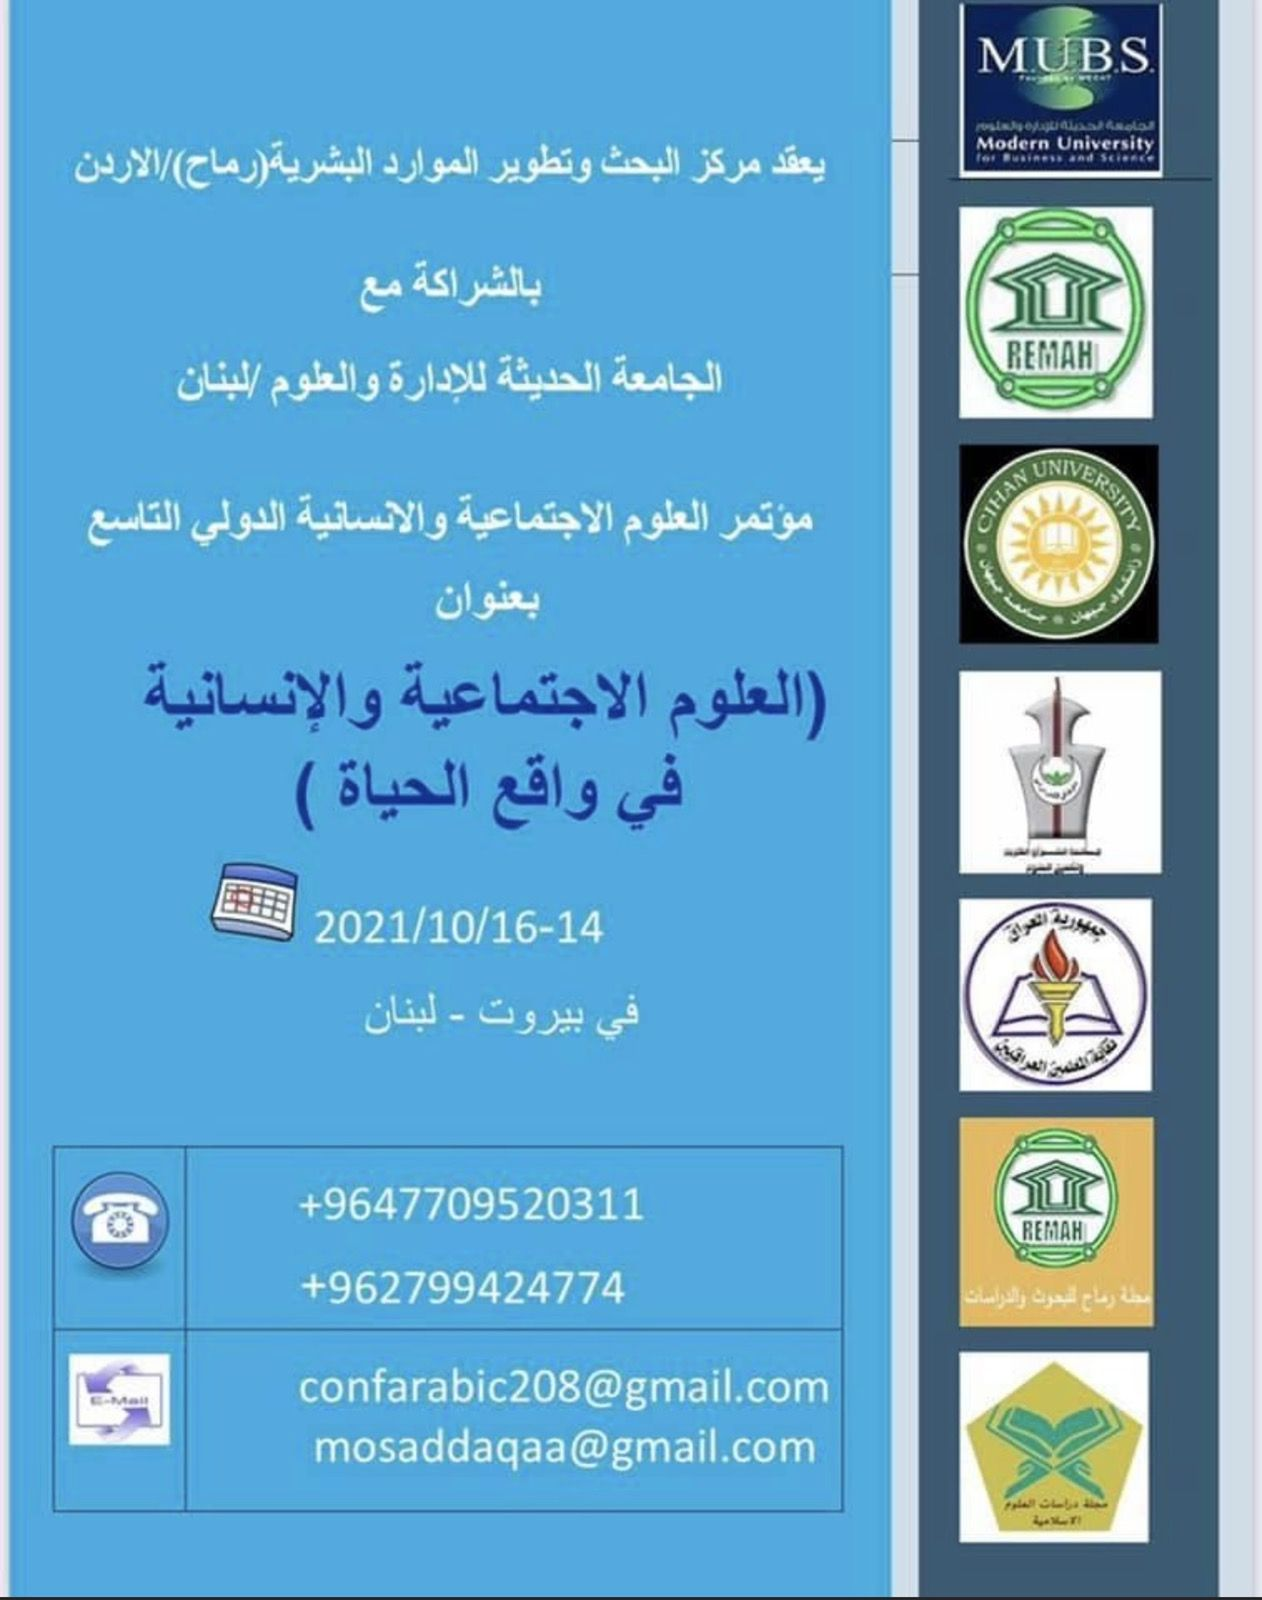 """the activities of the Ninth International Conference on Social and Human Sciences, entitled """"Social and Human Sciences in Reality of Life"""" will start for three days"""